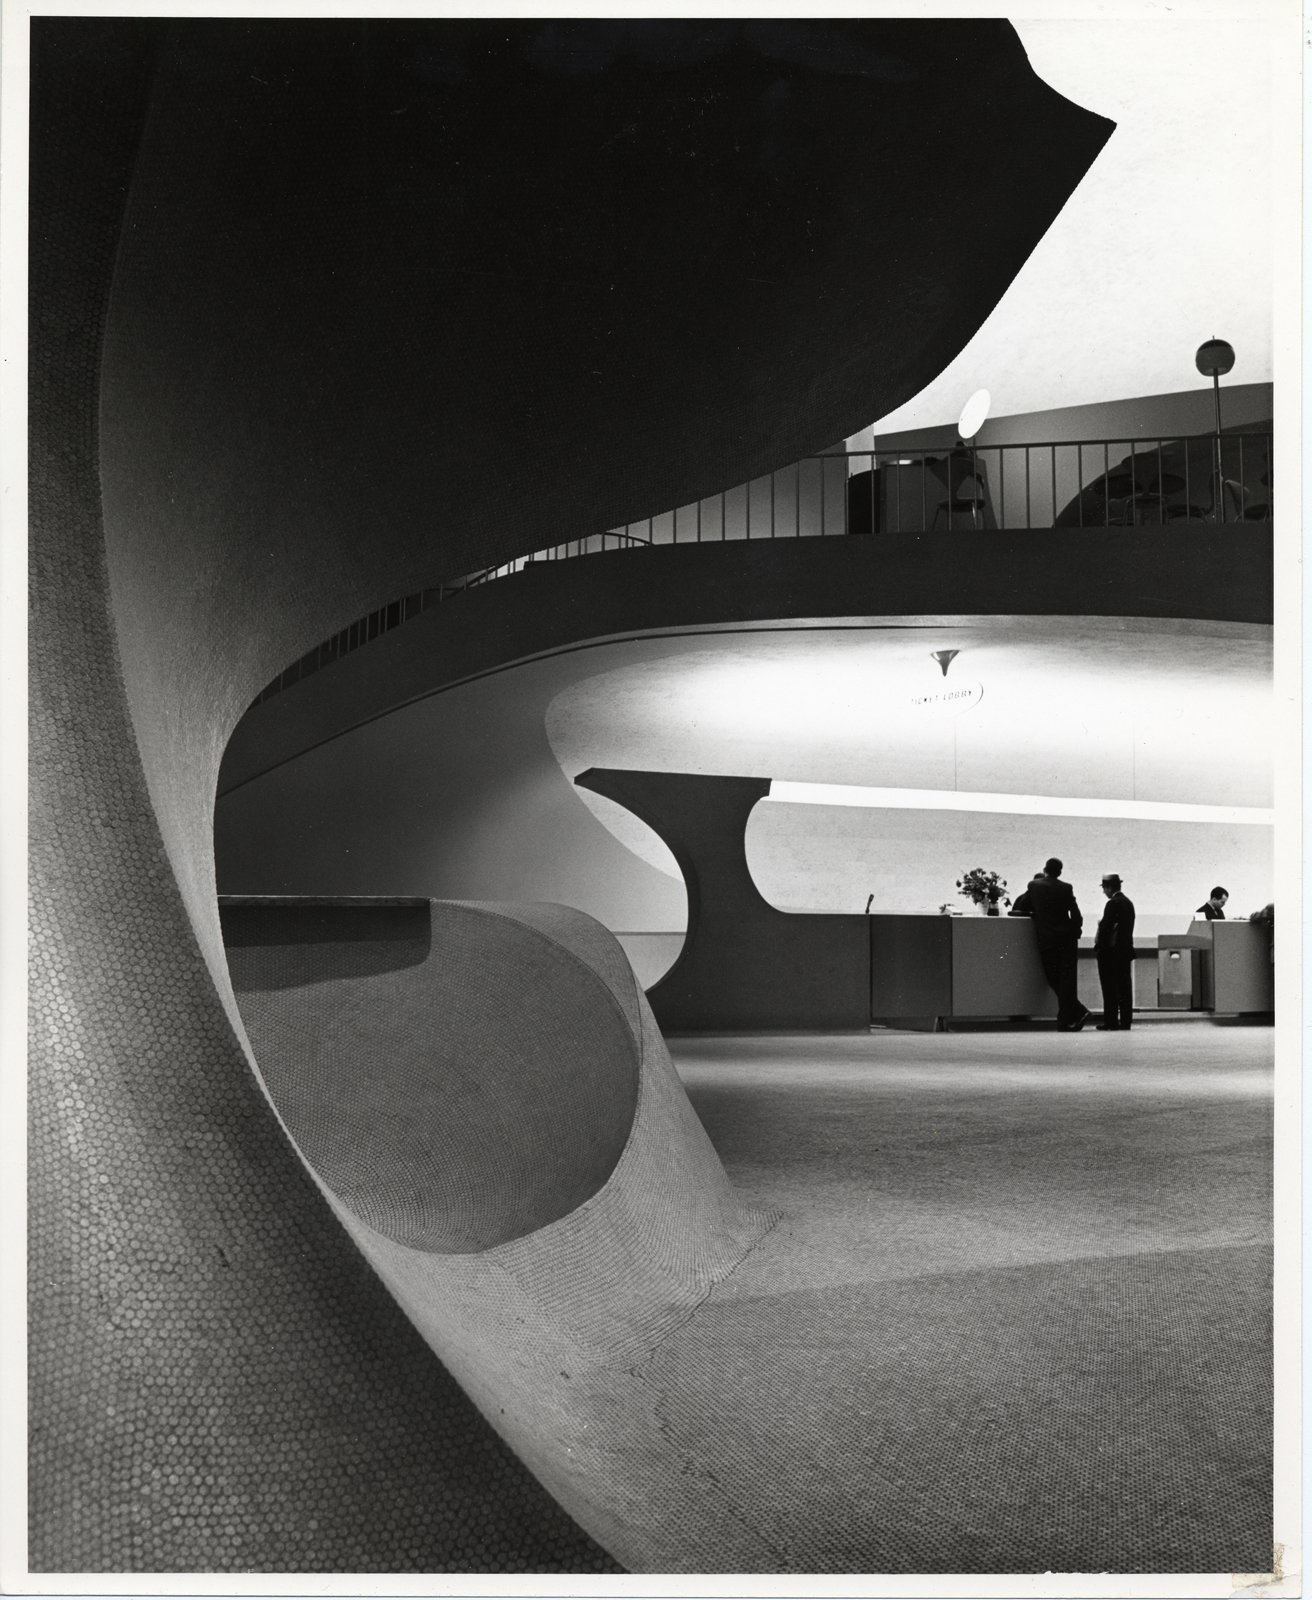 Photo of the TWA Terminal, New York International (now John F. Kennedy International) Airport (1962) by Eero Saarinen, on display at the Museum of the City of New York through January 31, 2010. Image by Balthazar Korab and courtesy of the Finnish Cultural Institute in New York.  Photo 11 of 15 in Events this Weekend: 1.28-1.31